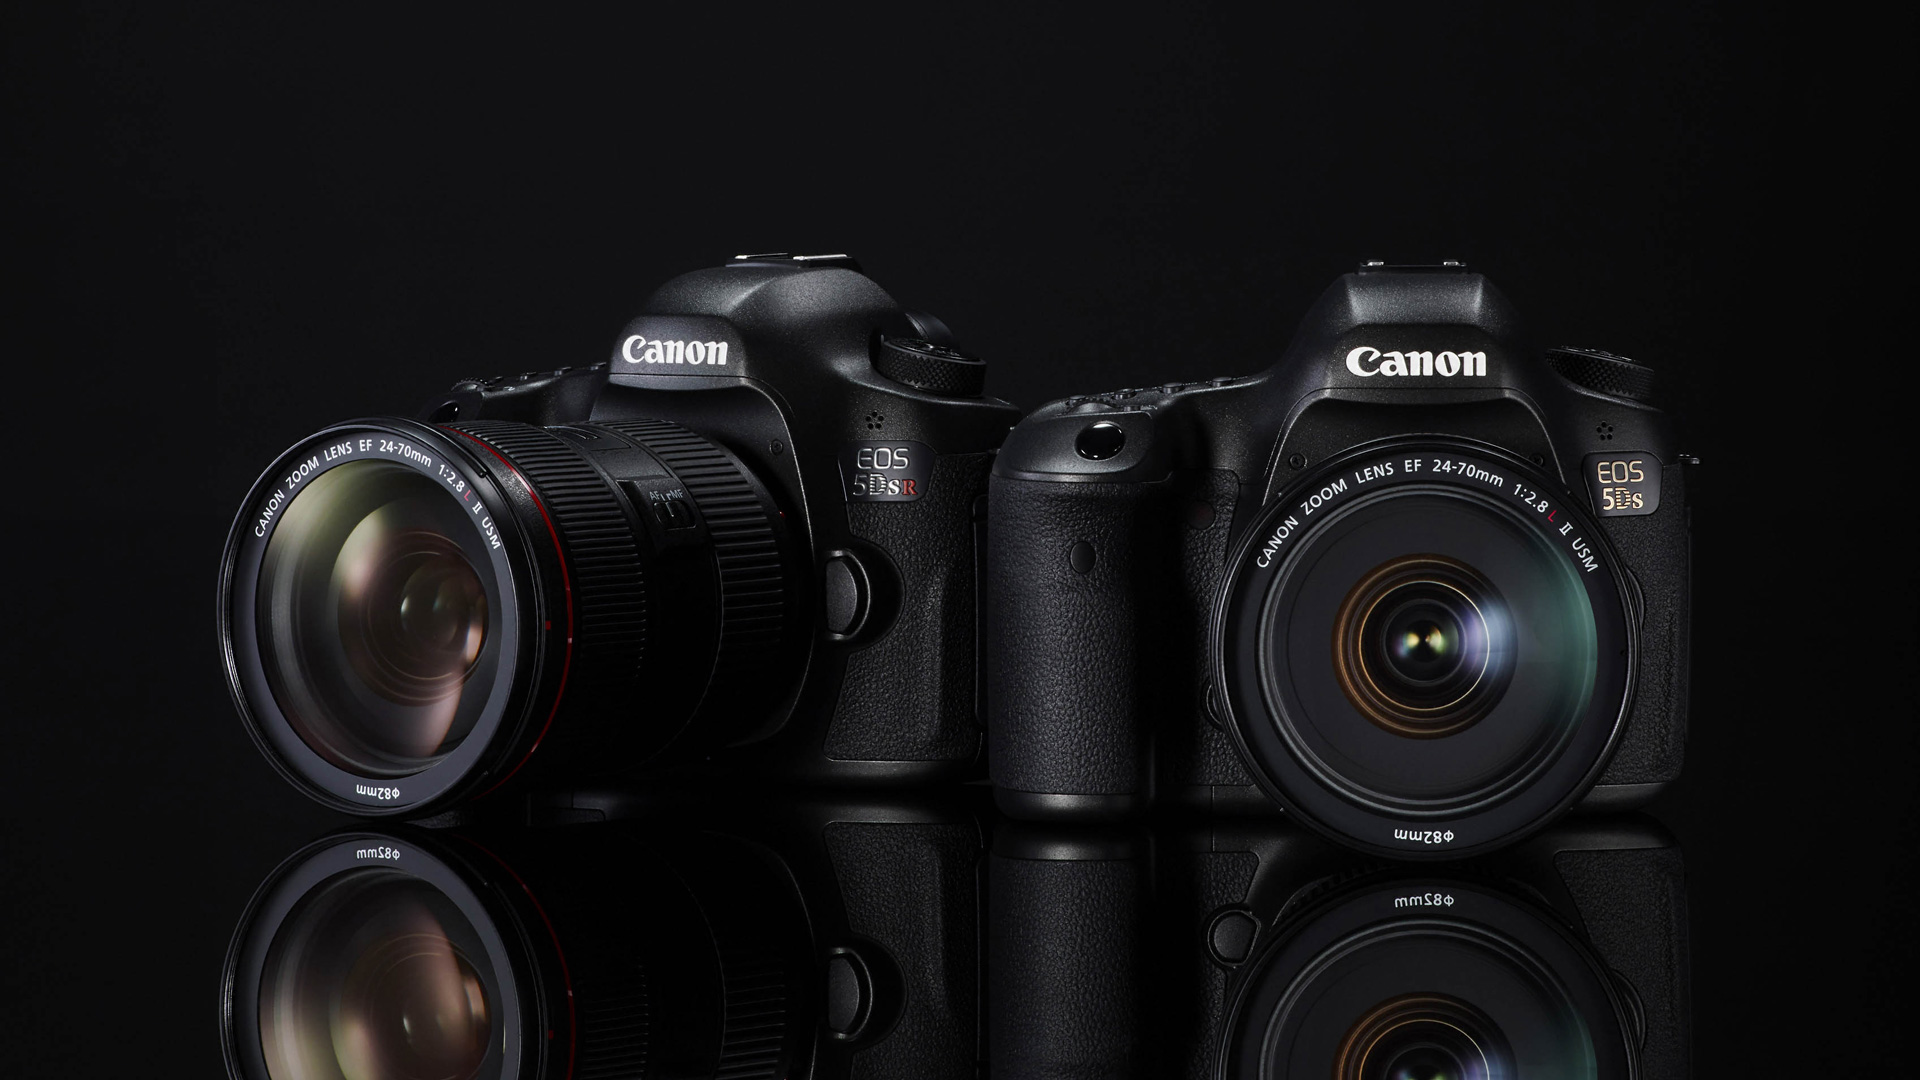 The 10 best full-frame DSLRs in UAE for 2018 - iBlogiBlog